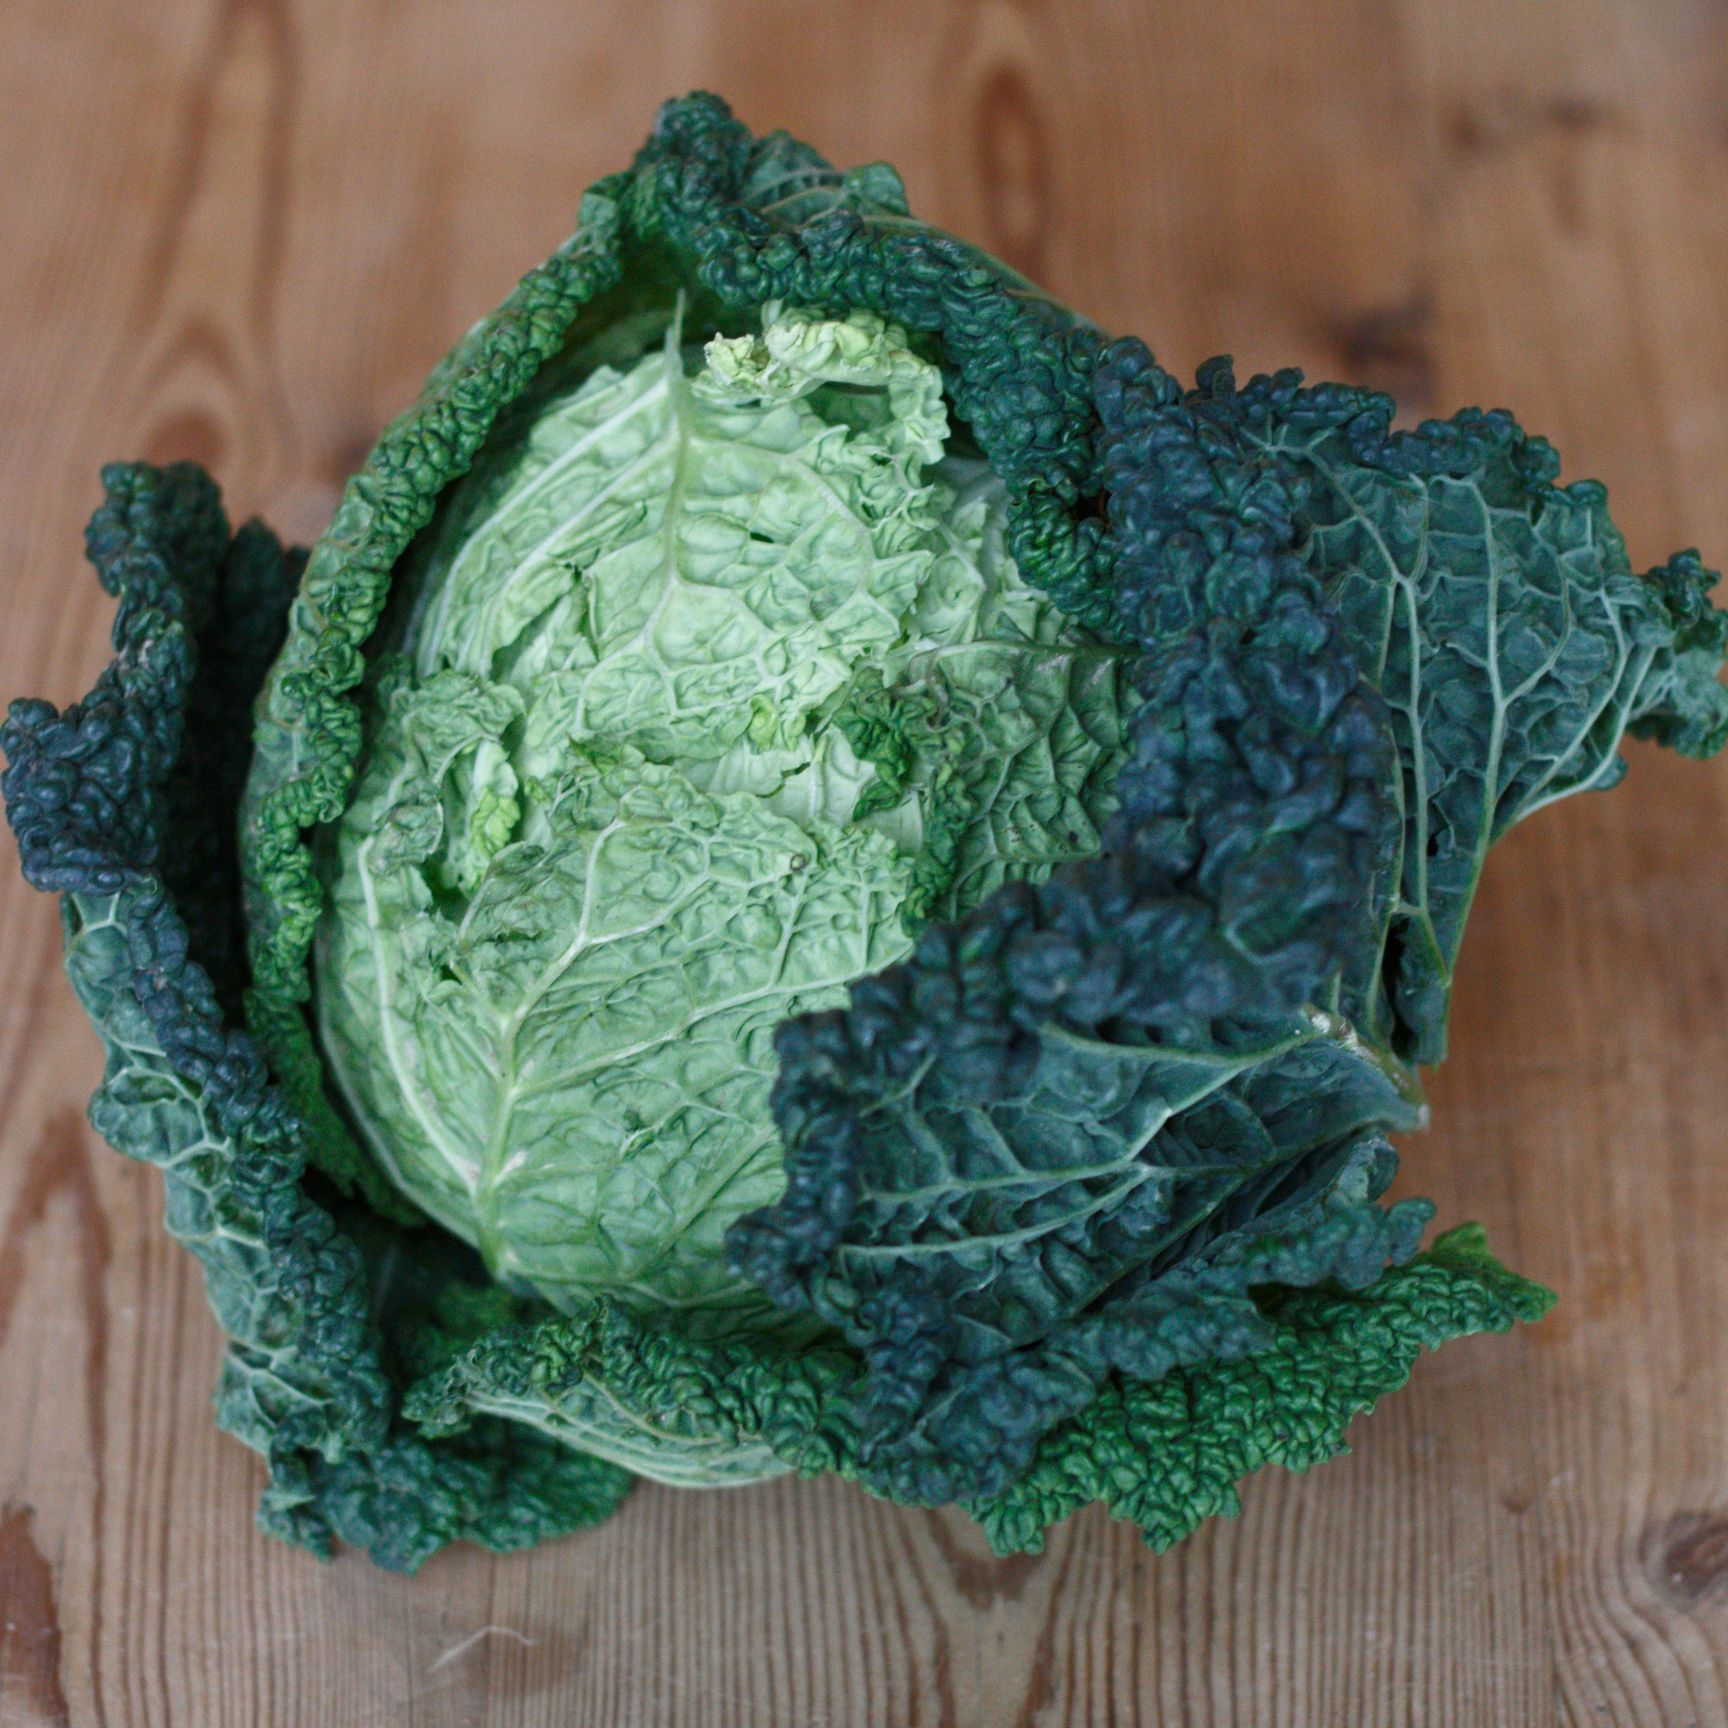 Savoy Cabbage The Goods Shed